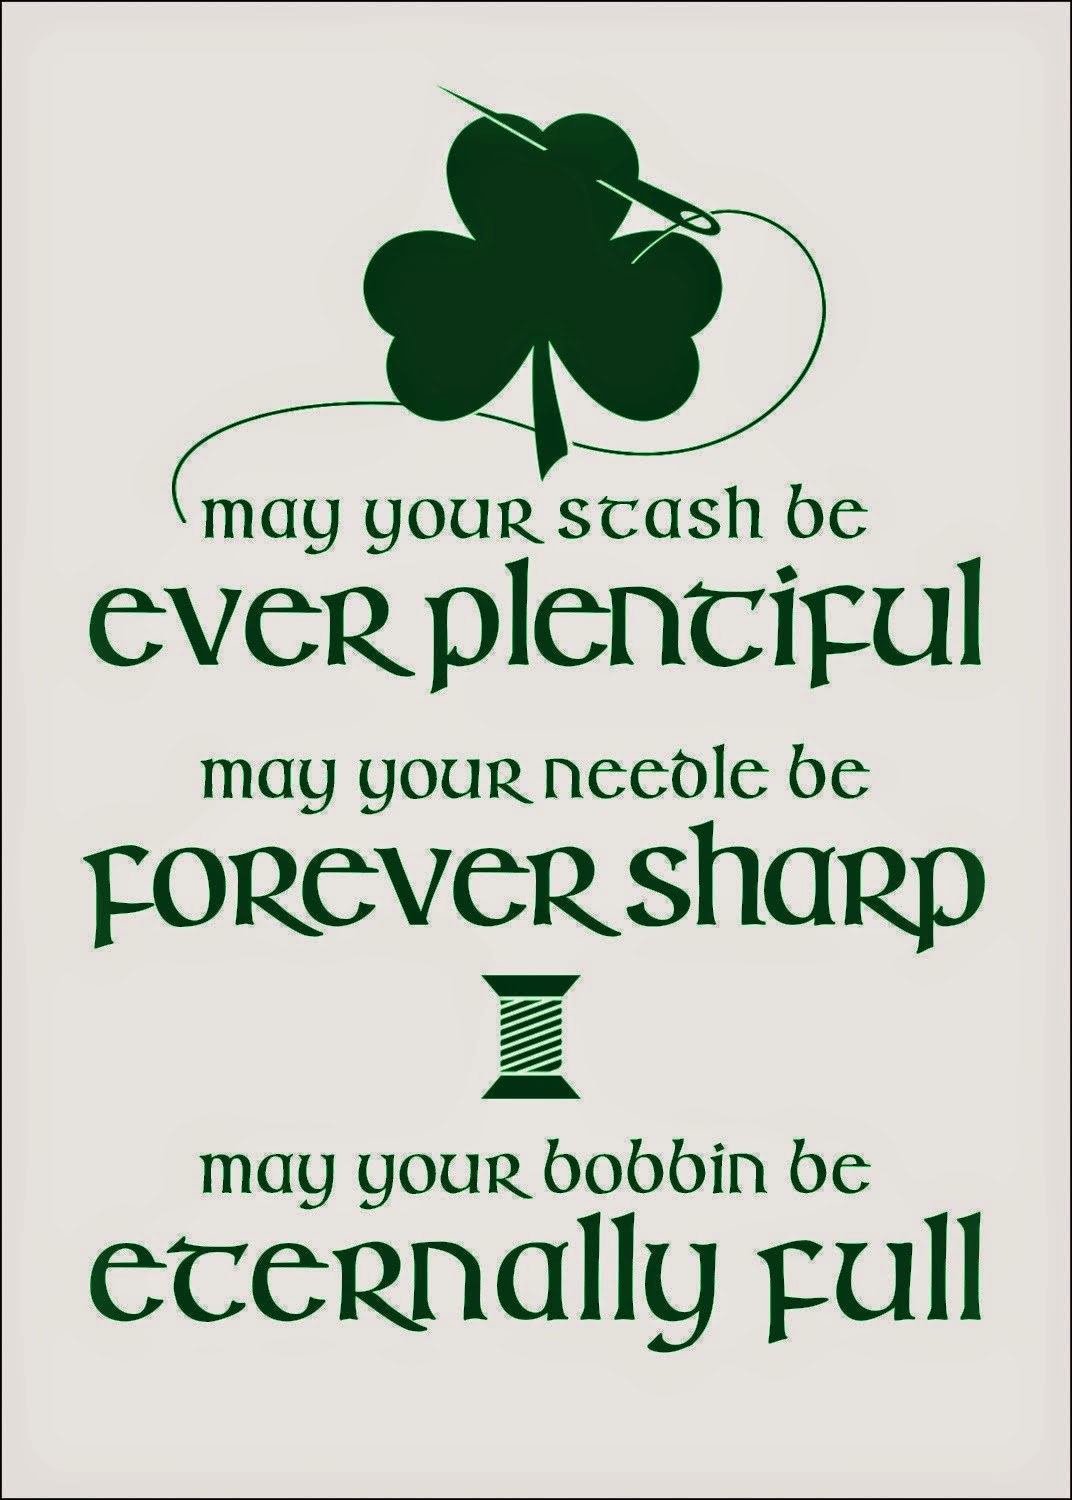 http://theinspiredwren.blogspot.com/2015/03/free-printable-irish-sewing-blessing.html